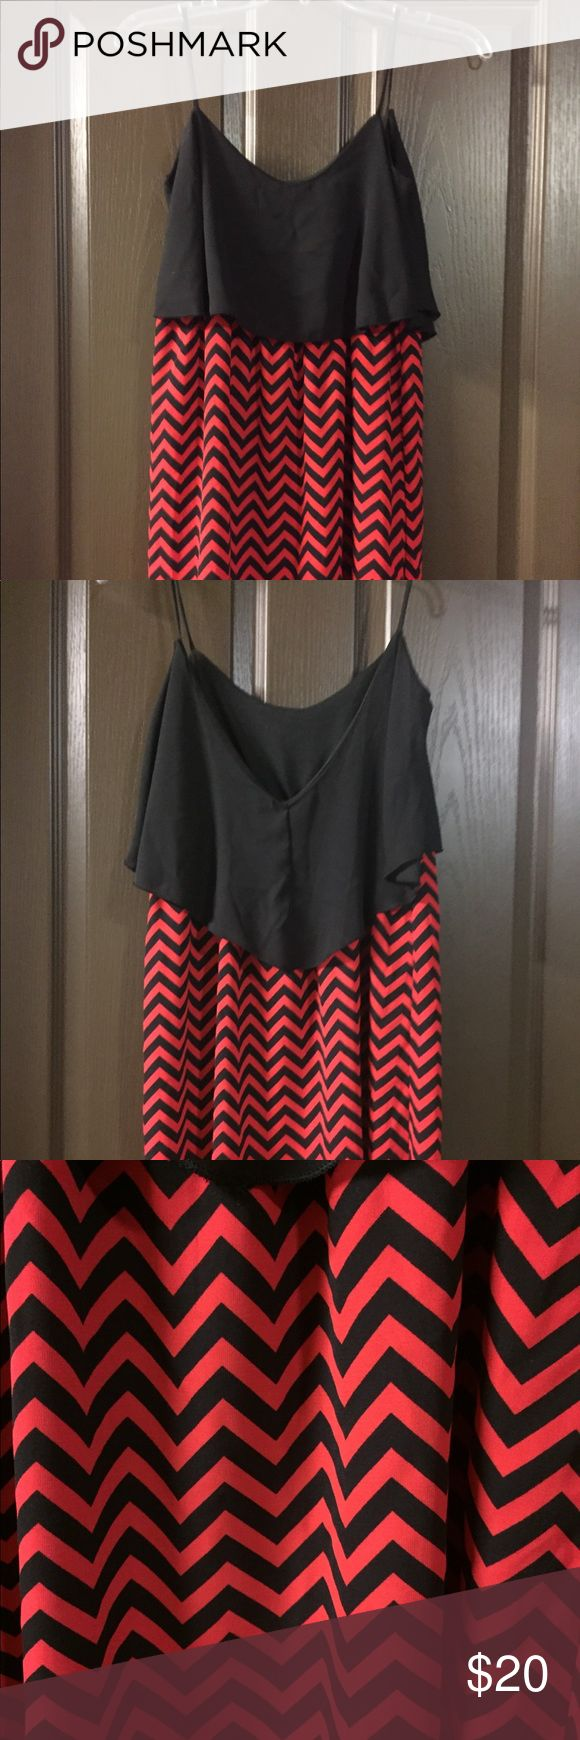 Game Day Dress❤️🖤❤️ Super cute boutique game day dress!!! Size is S/M fits like a 2/4 juniors! Perfect for Georgia, Troy, Alabama and so many more football games! Brighter red with black chevron- not deep crimsony red! Worn to one Troy game!! In perfect condition! fascination Dresses Mini